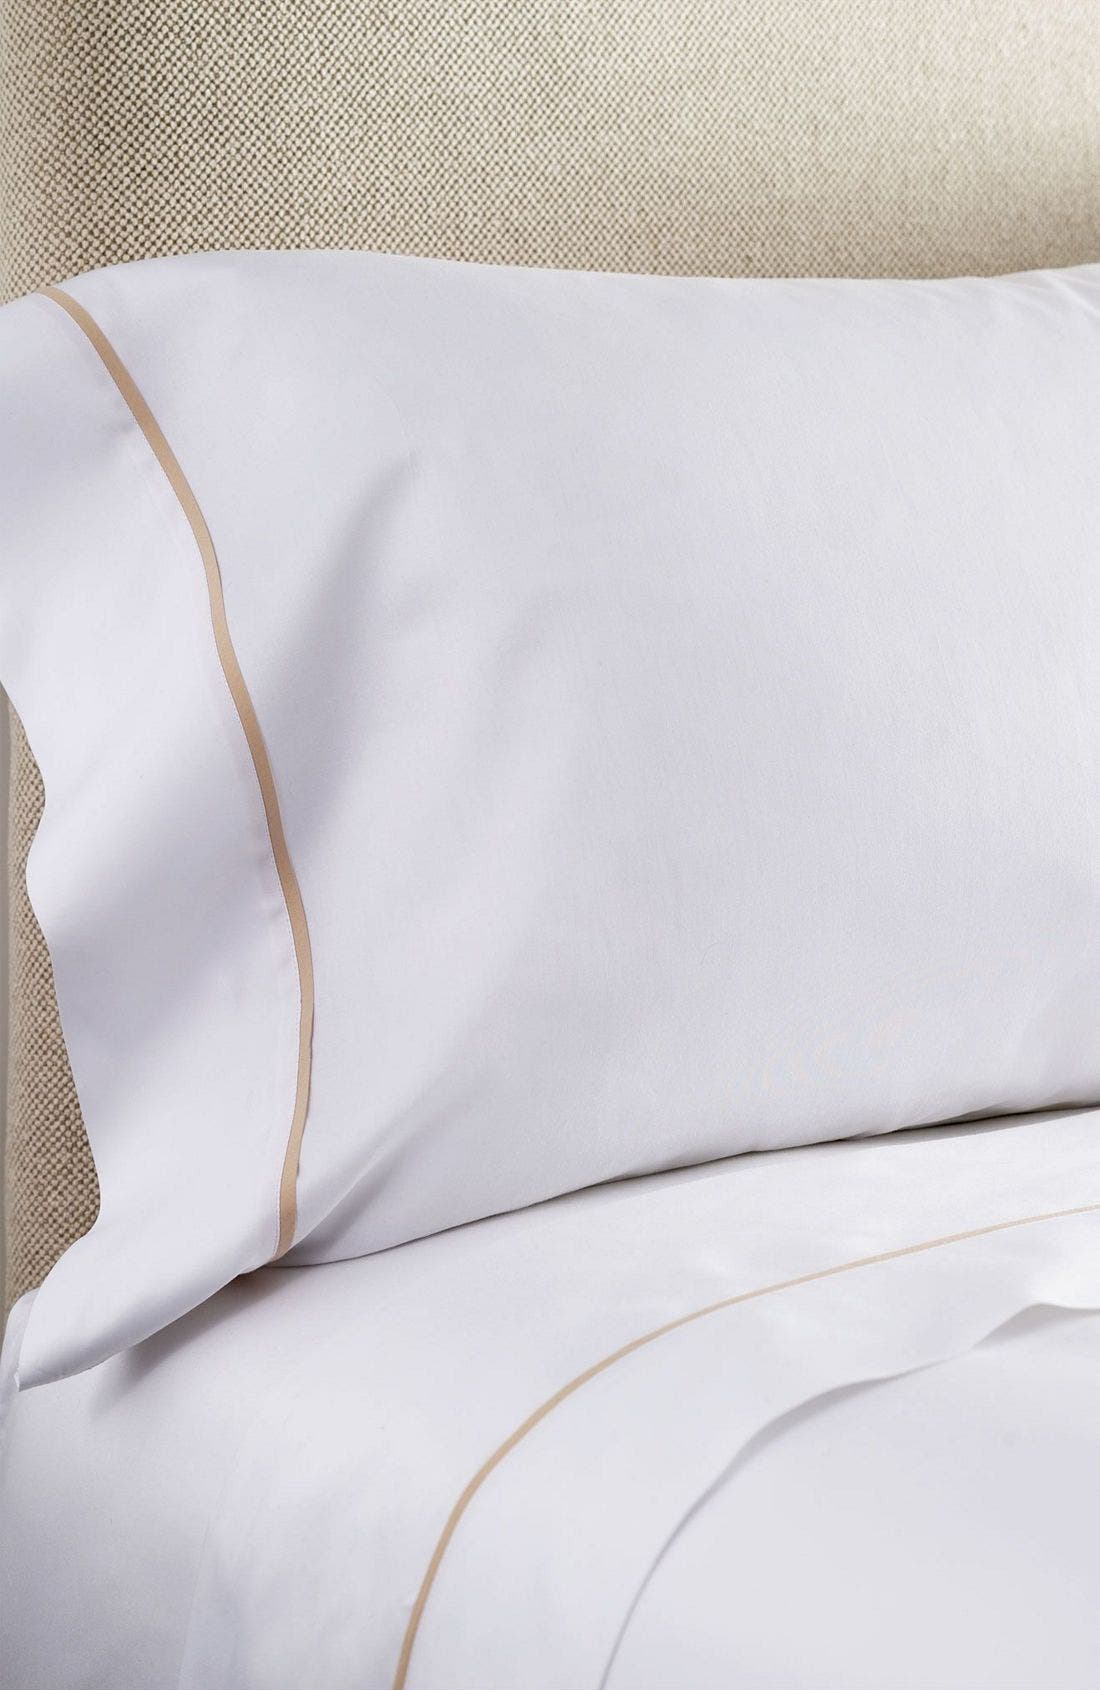 Alternate Image 1 Selected - Westin Heavenly Bed® 300 Thread Count Egyptian Cotton Luxe Pillowcase